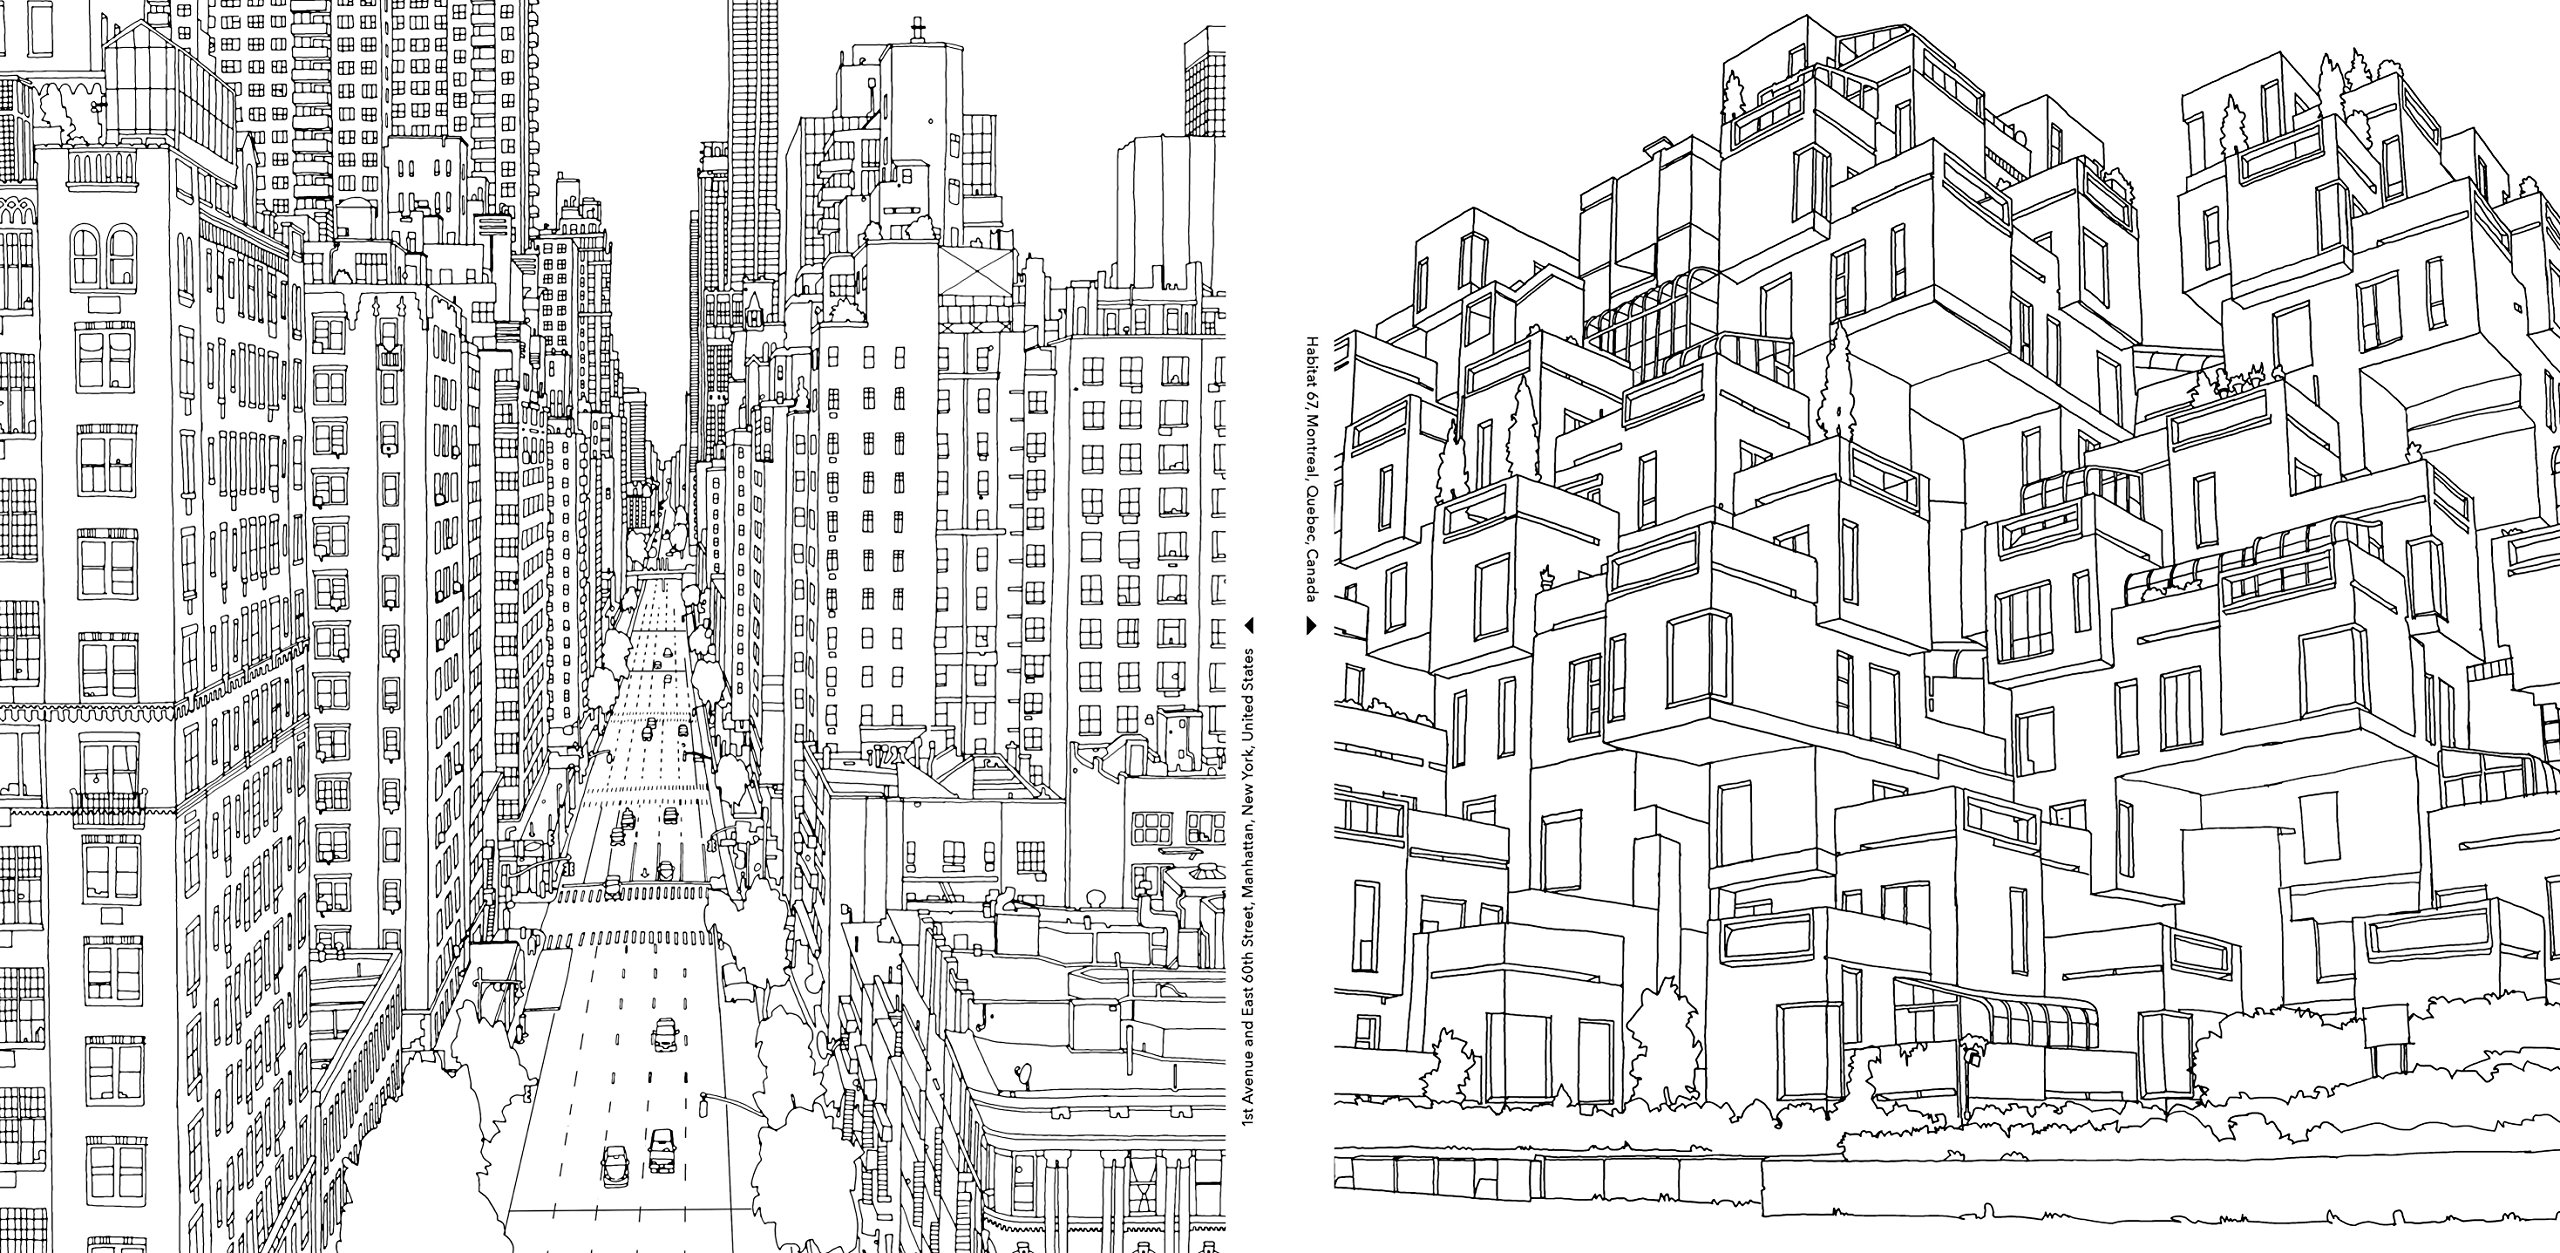 architecture coloring book pages - photo#19